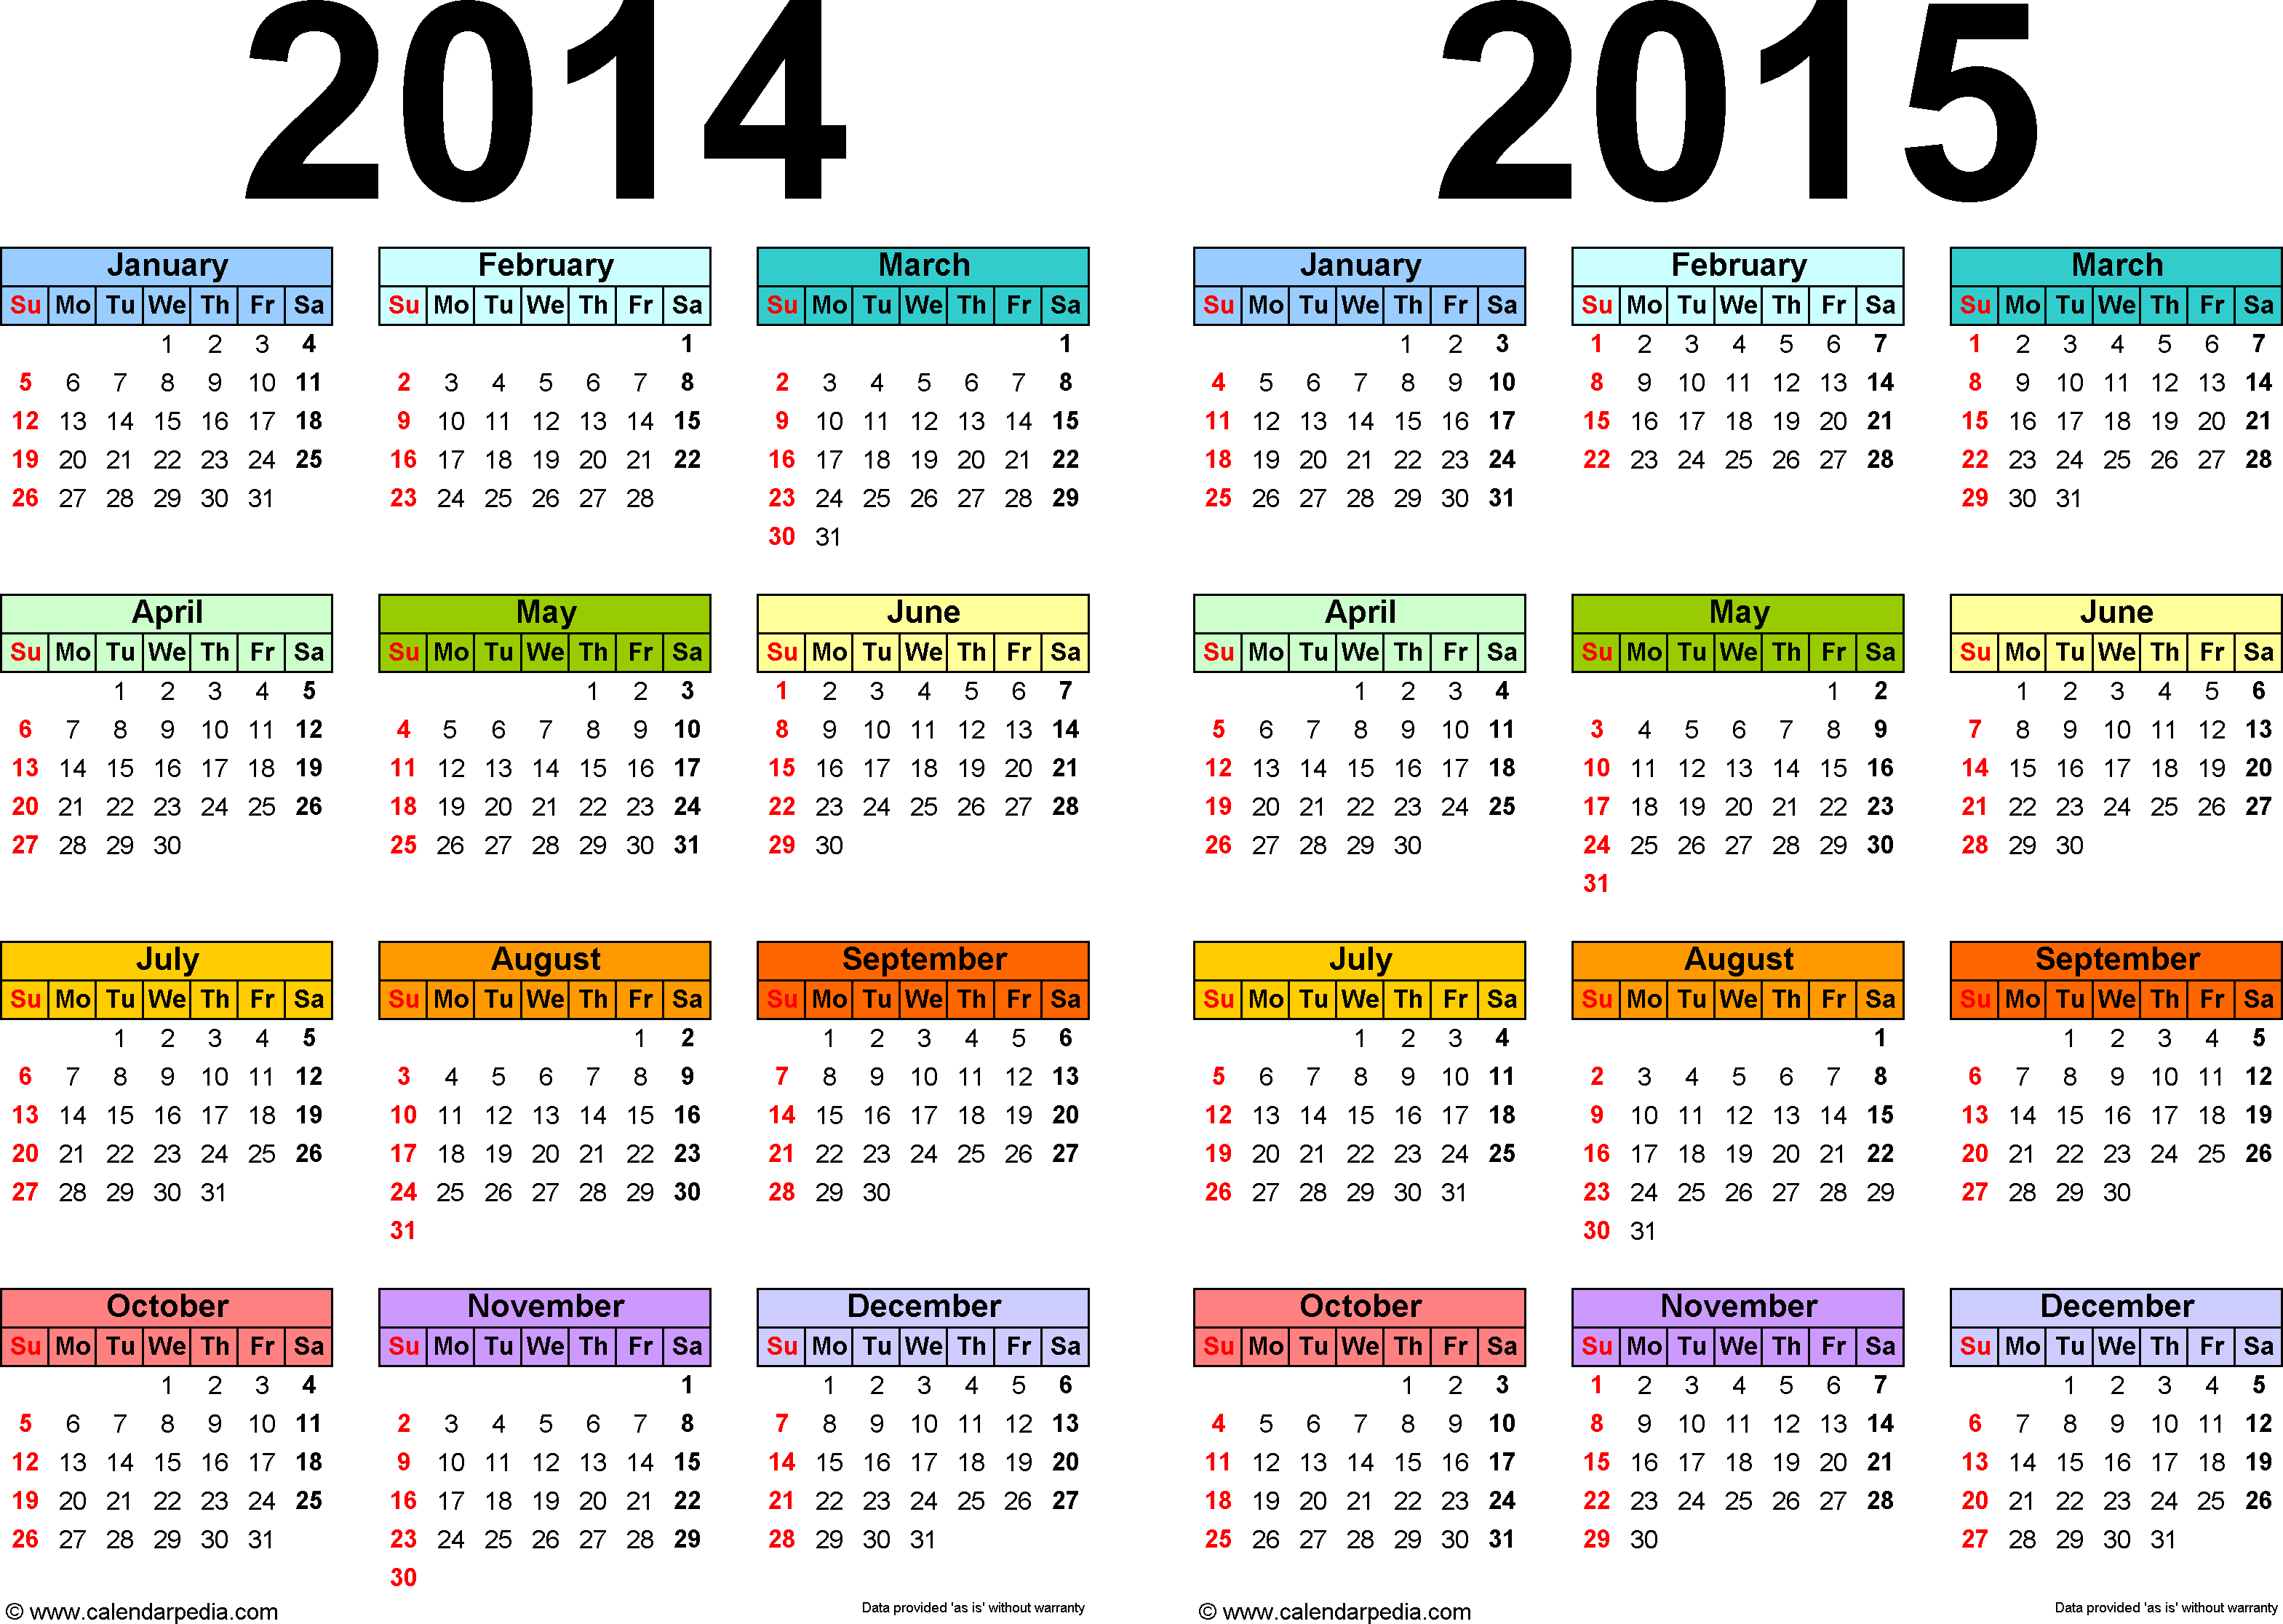 Template 1: Word template for two year calendar 2014/2015 (landscape orientation, 1 page, in color)